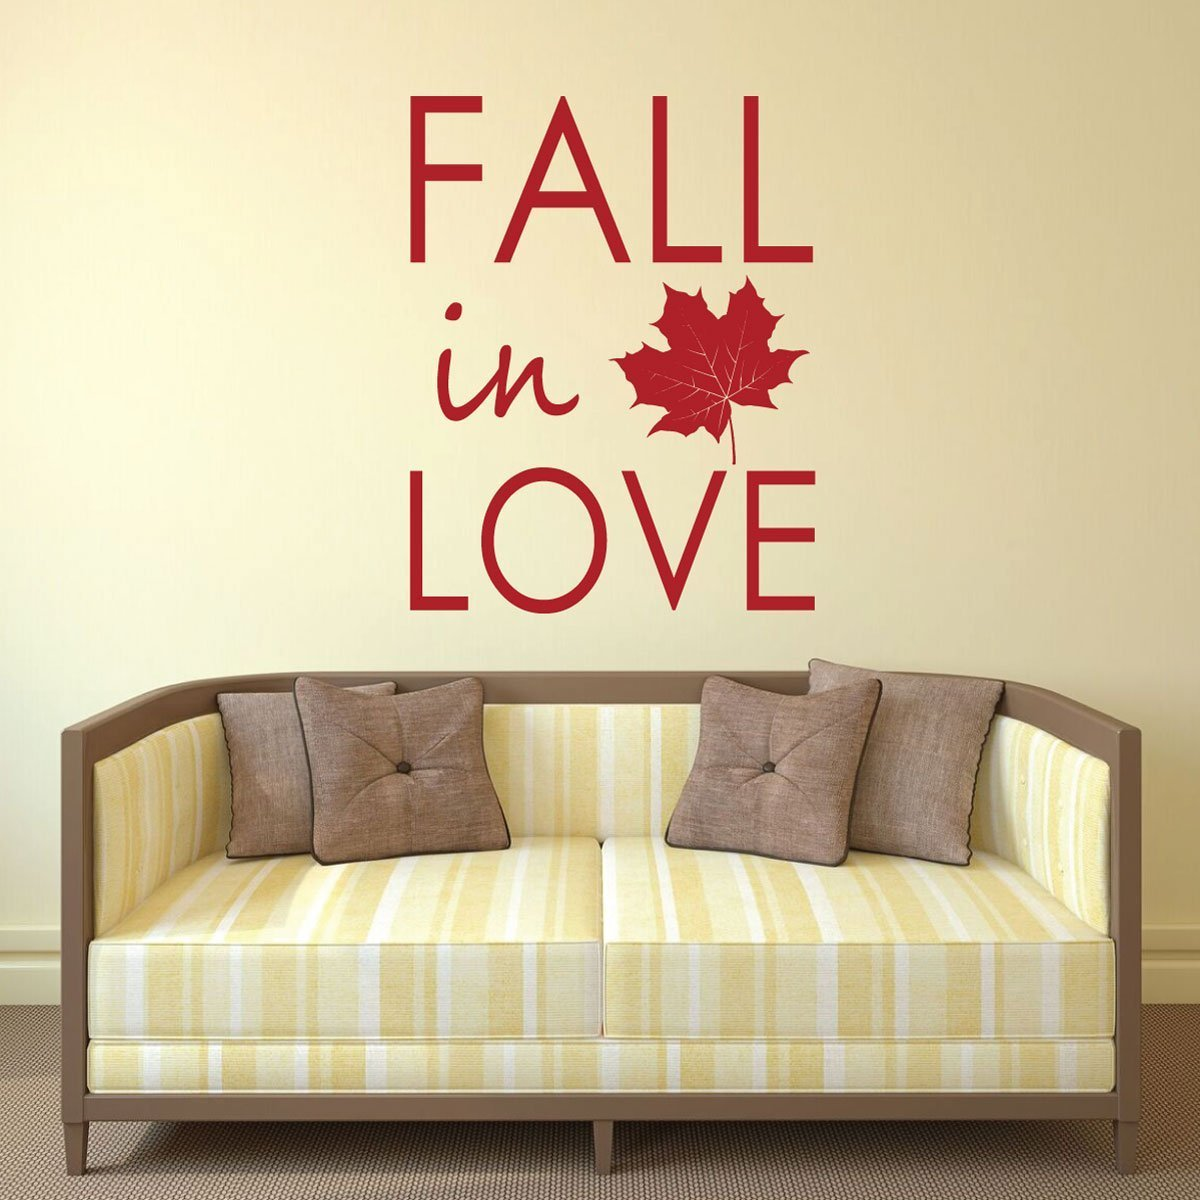 Fall Decoration - Fall in Love - Autumn Wall Art